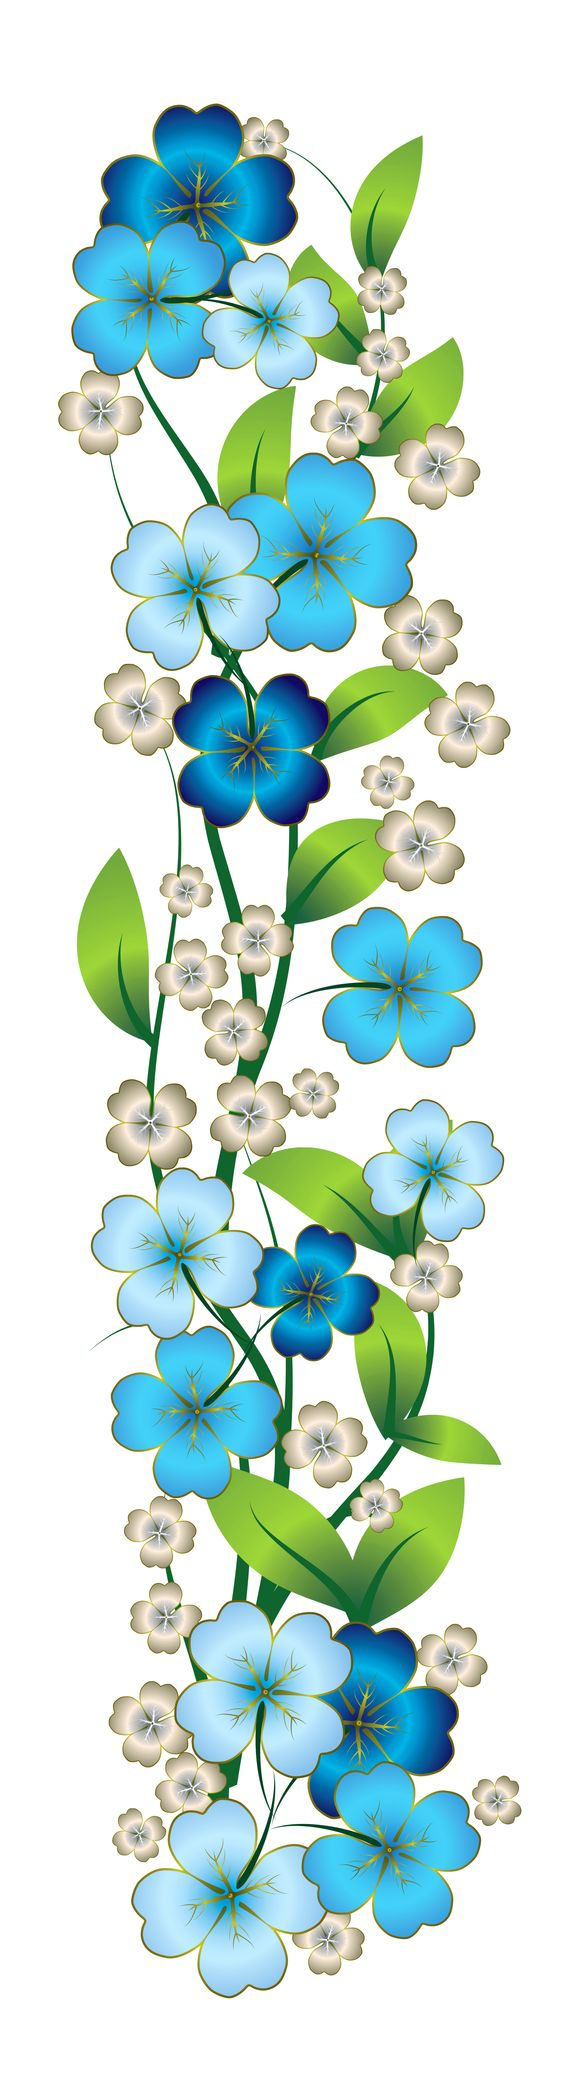 Blue Flower Decor Png Clipart Decoupage Pinterest Blue